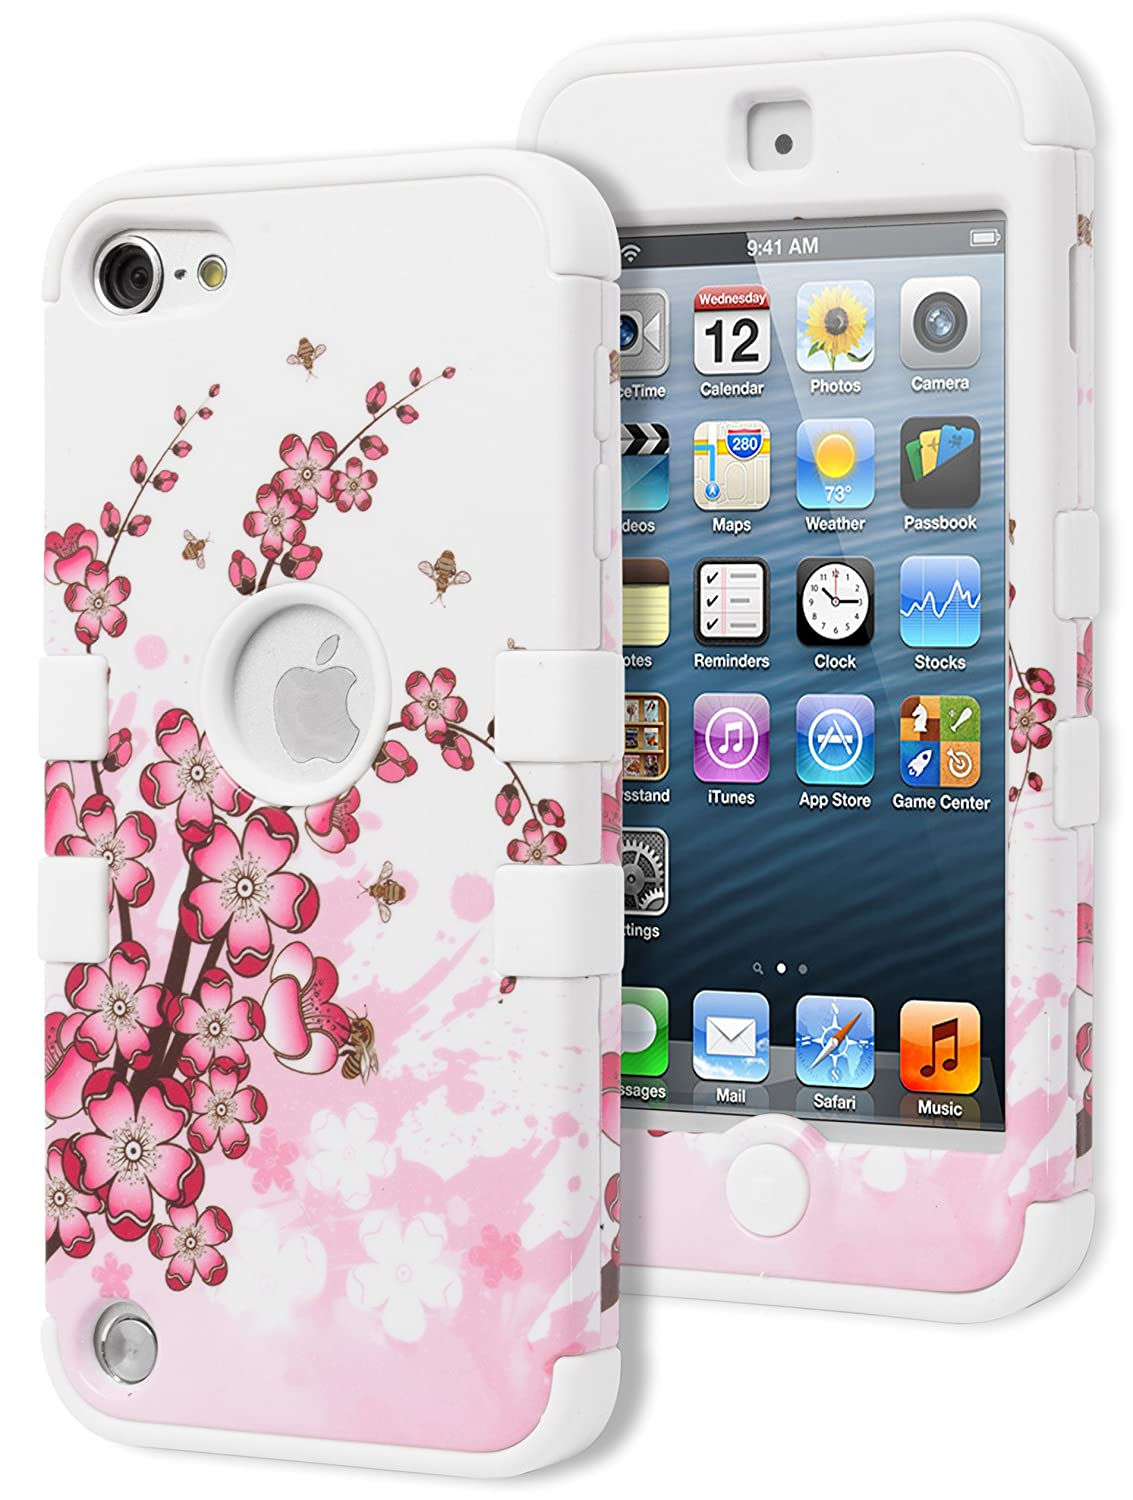 iPod Touch 5 Case, Bastex Hybrid Protective Case - Soft White Silicone Cover with Pink Hibiscus Flower Design Hard Case for Apple iPod Touch 5 leegoal tm armor combo silicone hybrid hard case cover with kickstand fit for apple ipod touch 5g with accessories sreen protector anti dust plug